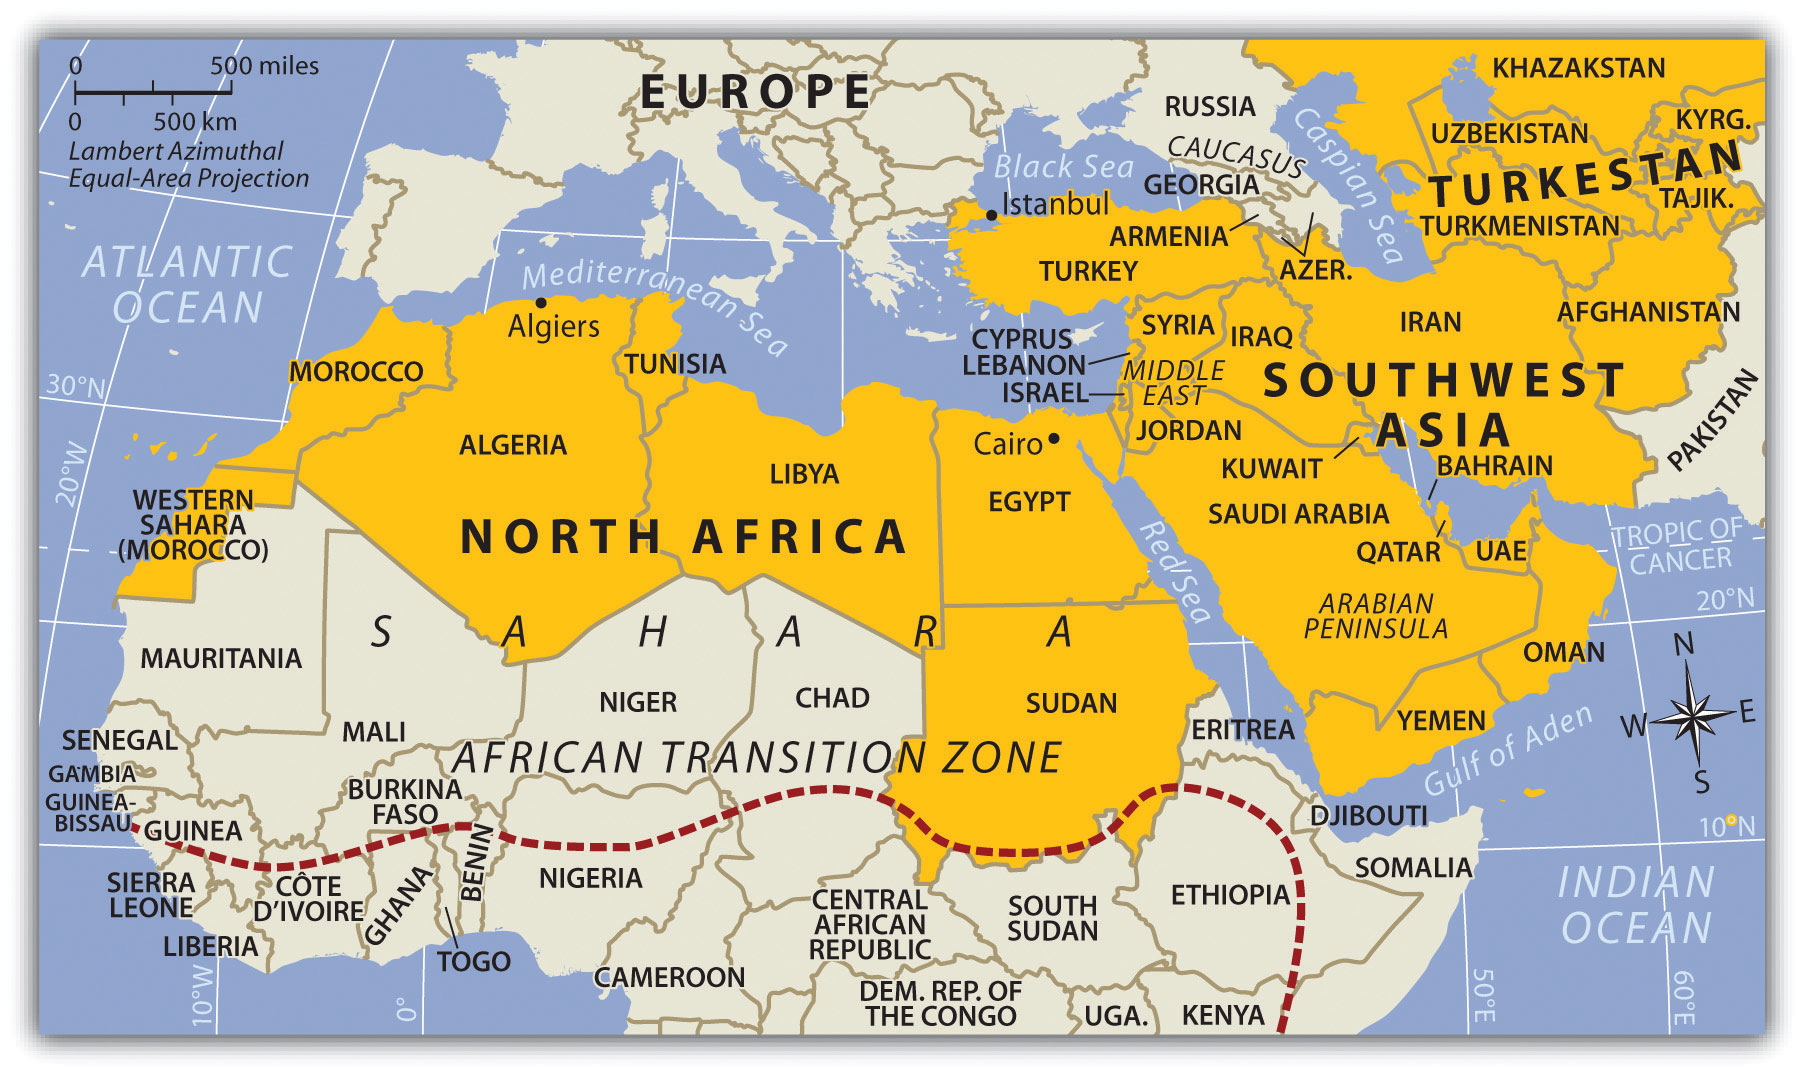 Map Of Africa And Southwest Asia | Jackenjuul